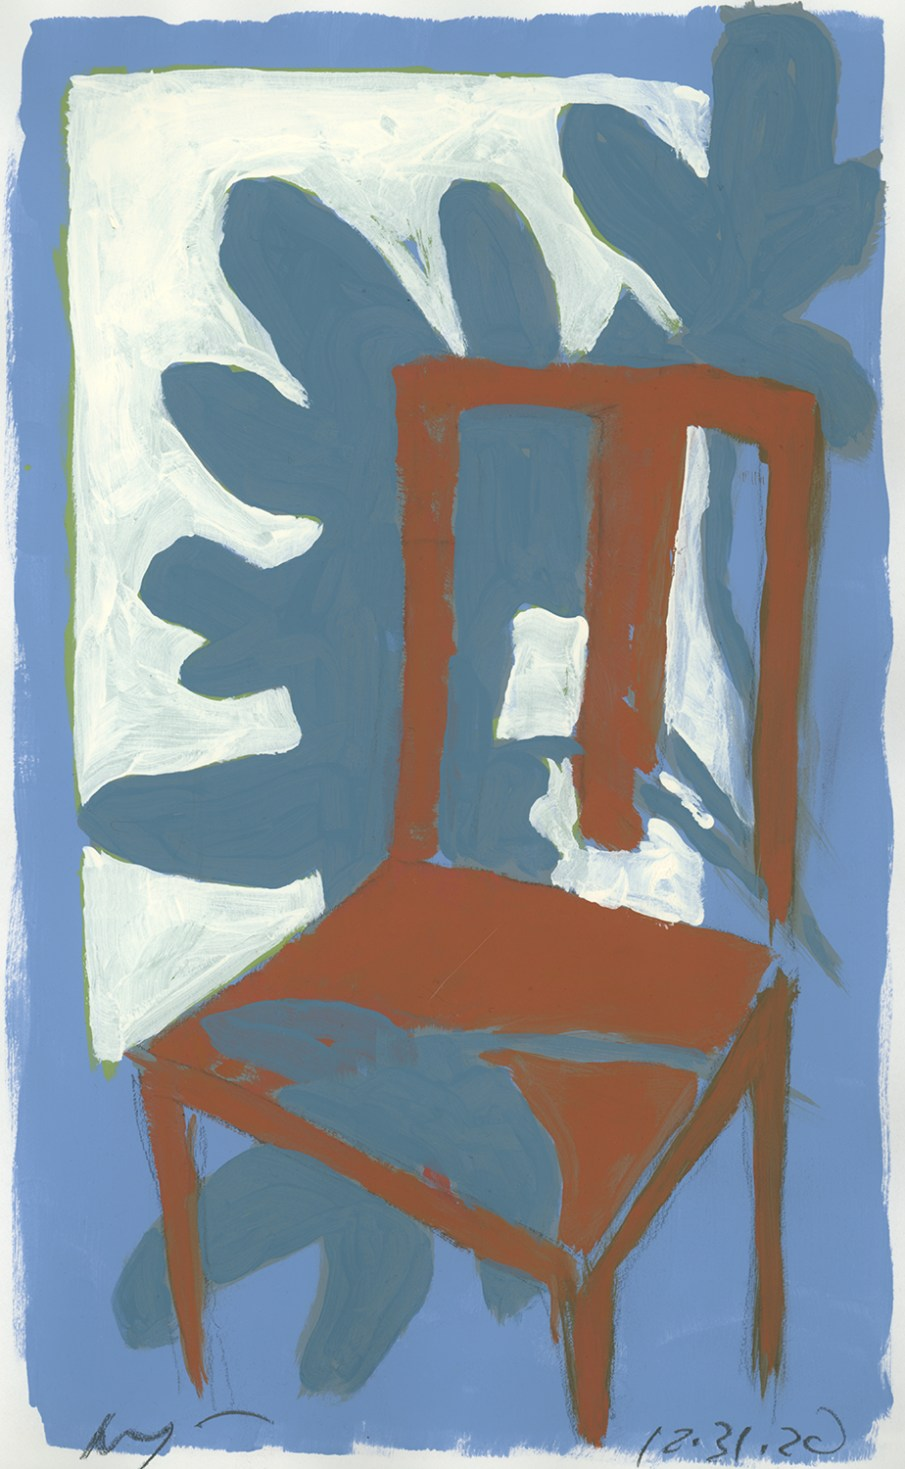 Red Chair and Plant, latex on paper, 14 X 20, 2020